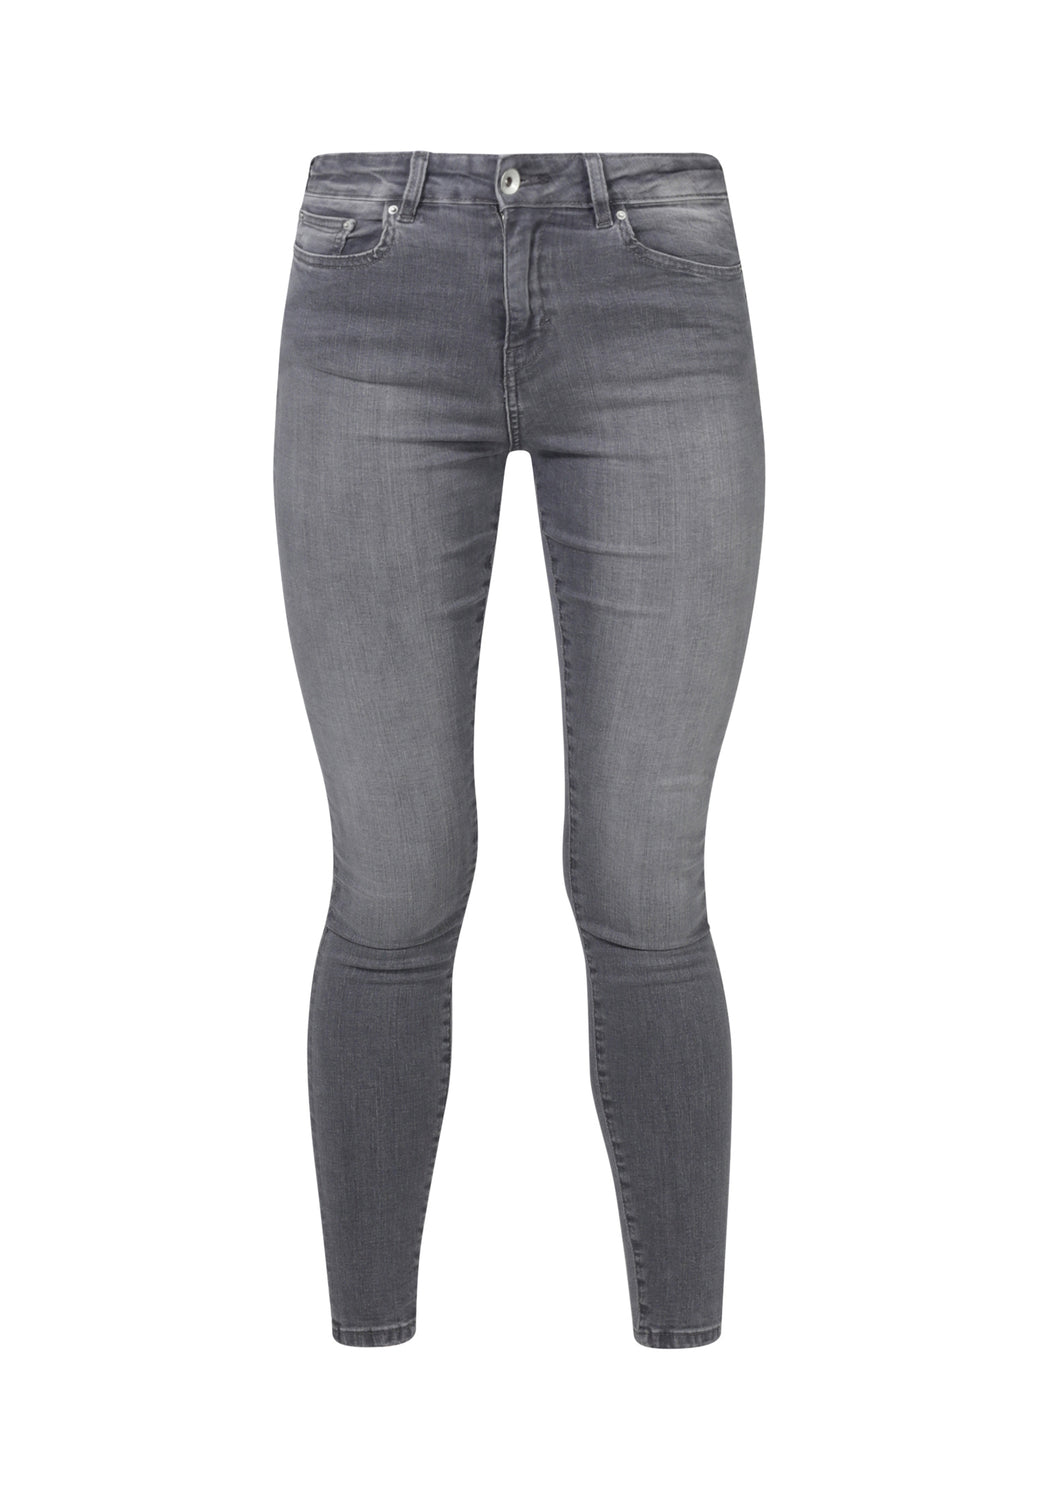 JANE // Organic Super Skinny High Waist Jeans in Light Grey Eco Wash - Monkee Genes Organic Jeans Denim - Women's Super Skinny Monkee Genes Official  Monkee Genes Official